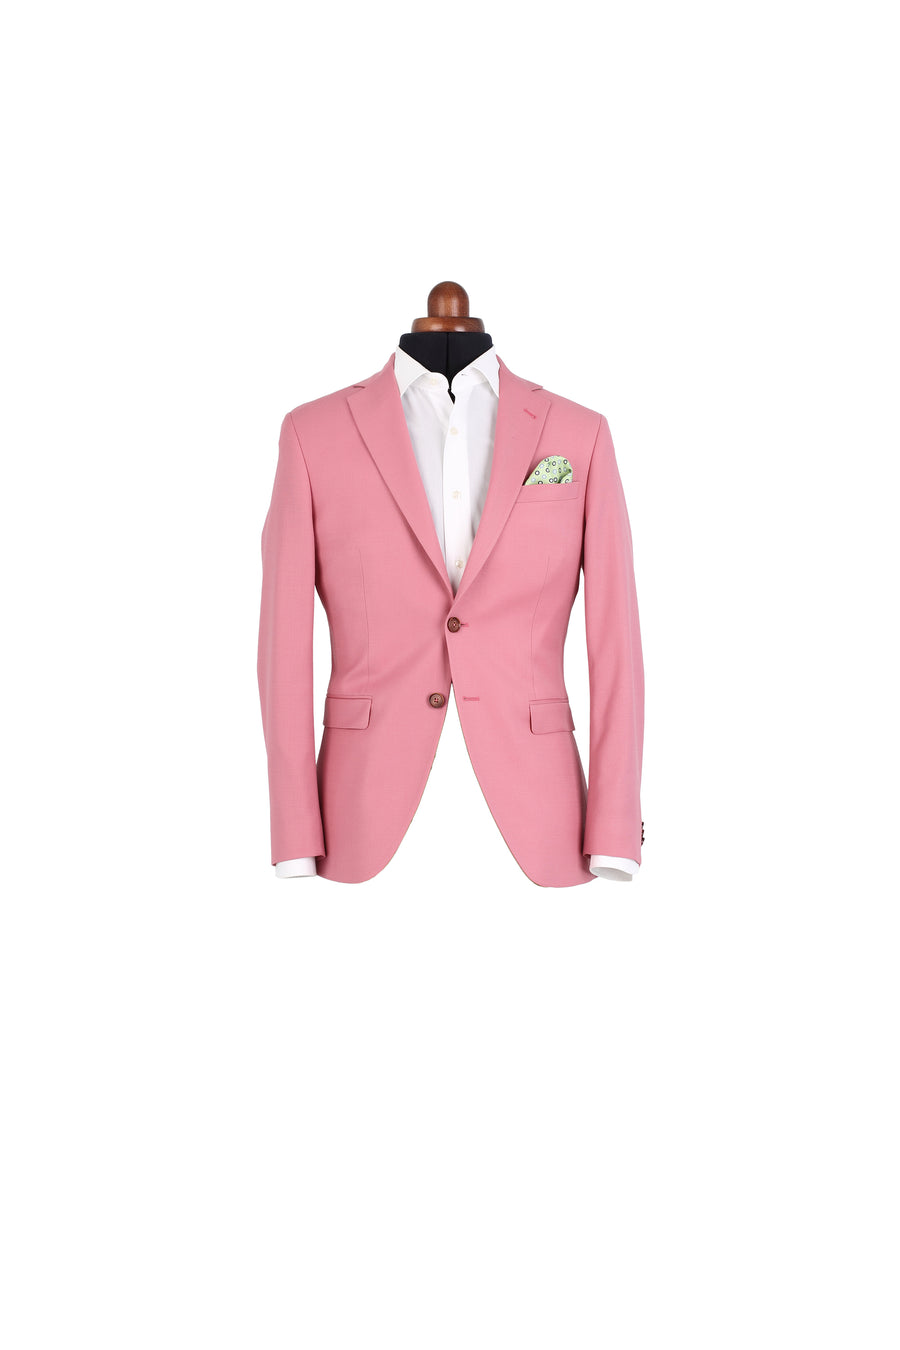 The Water Repellent Pink Jacket